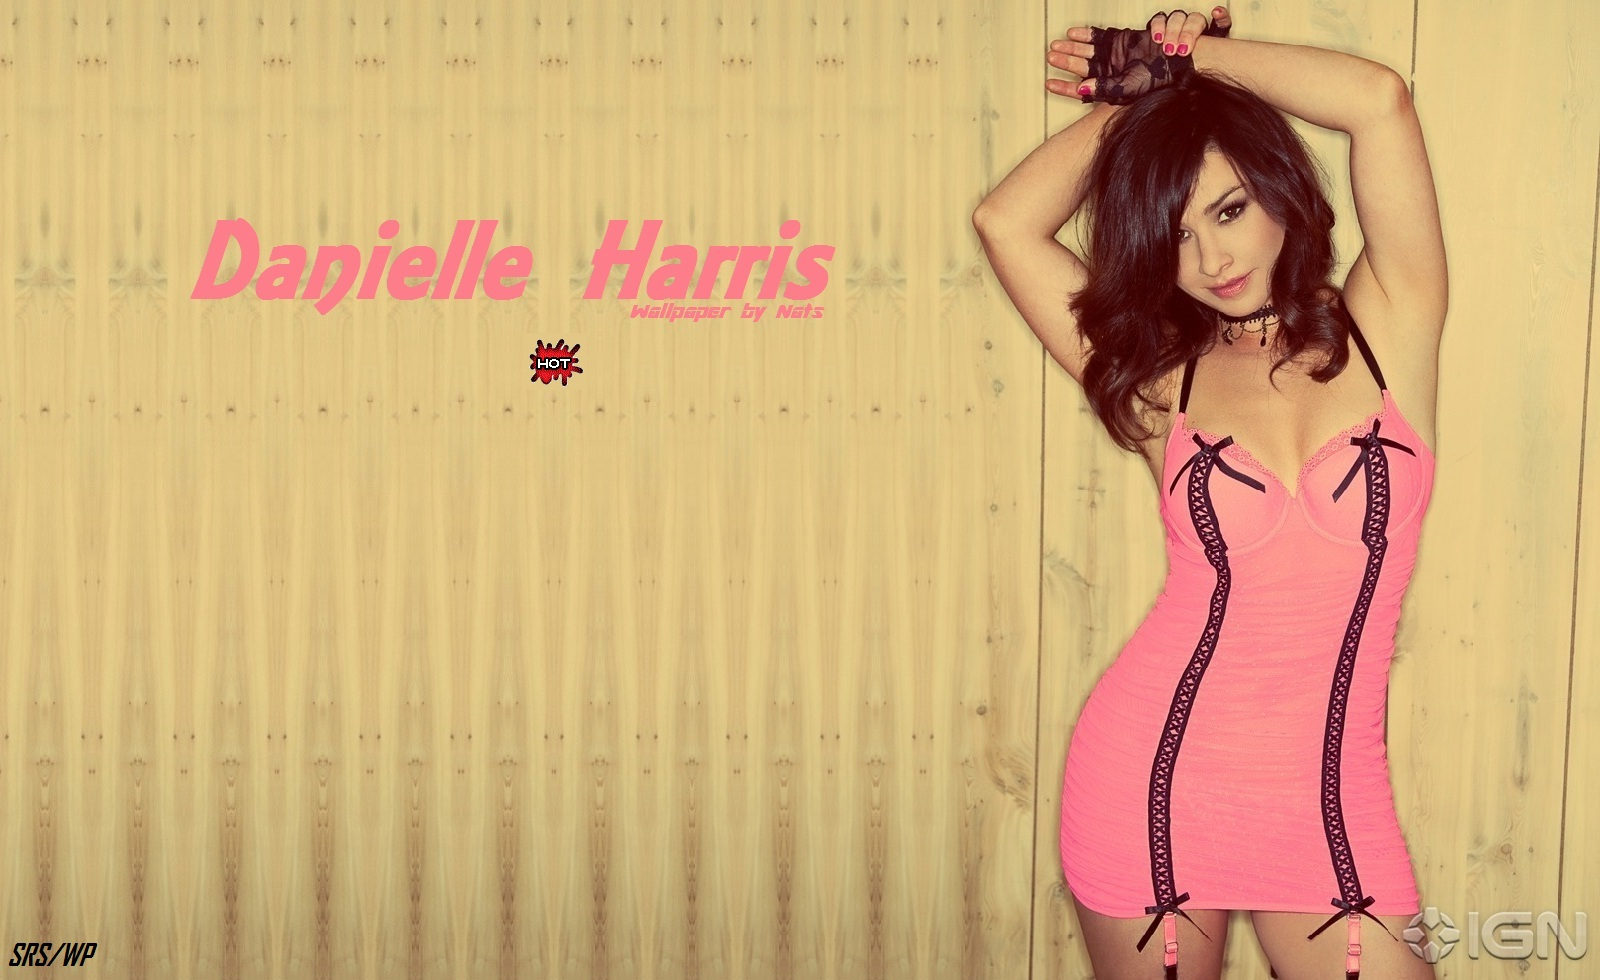 Download Hq Danielle Harris Wallpaper Celebrities Female